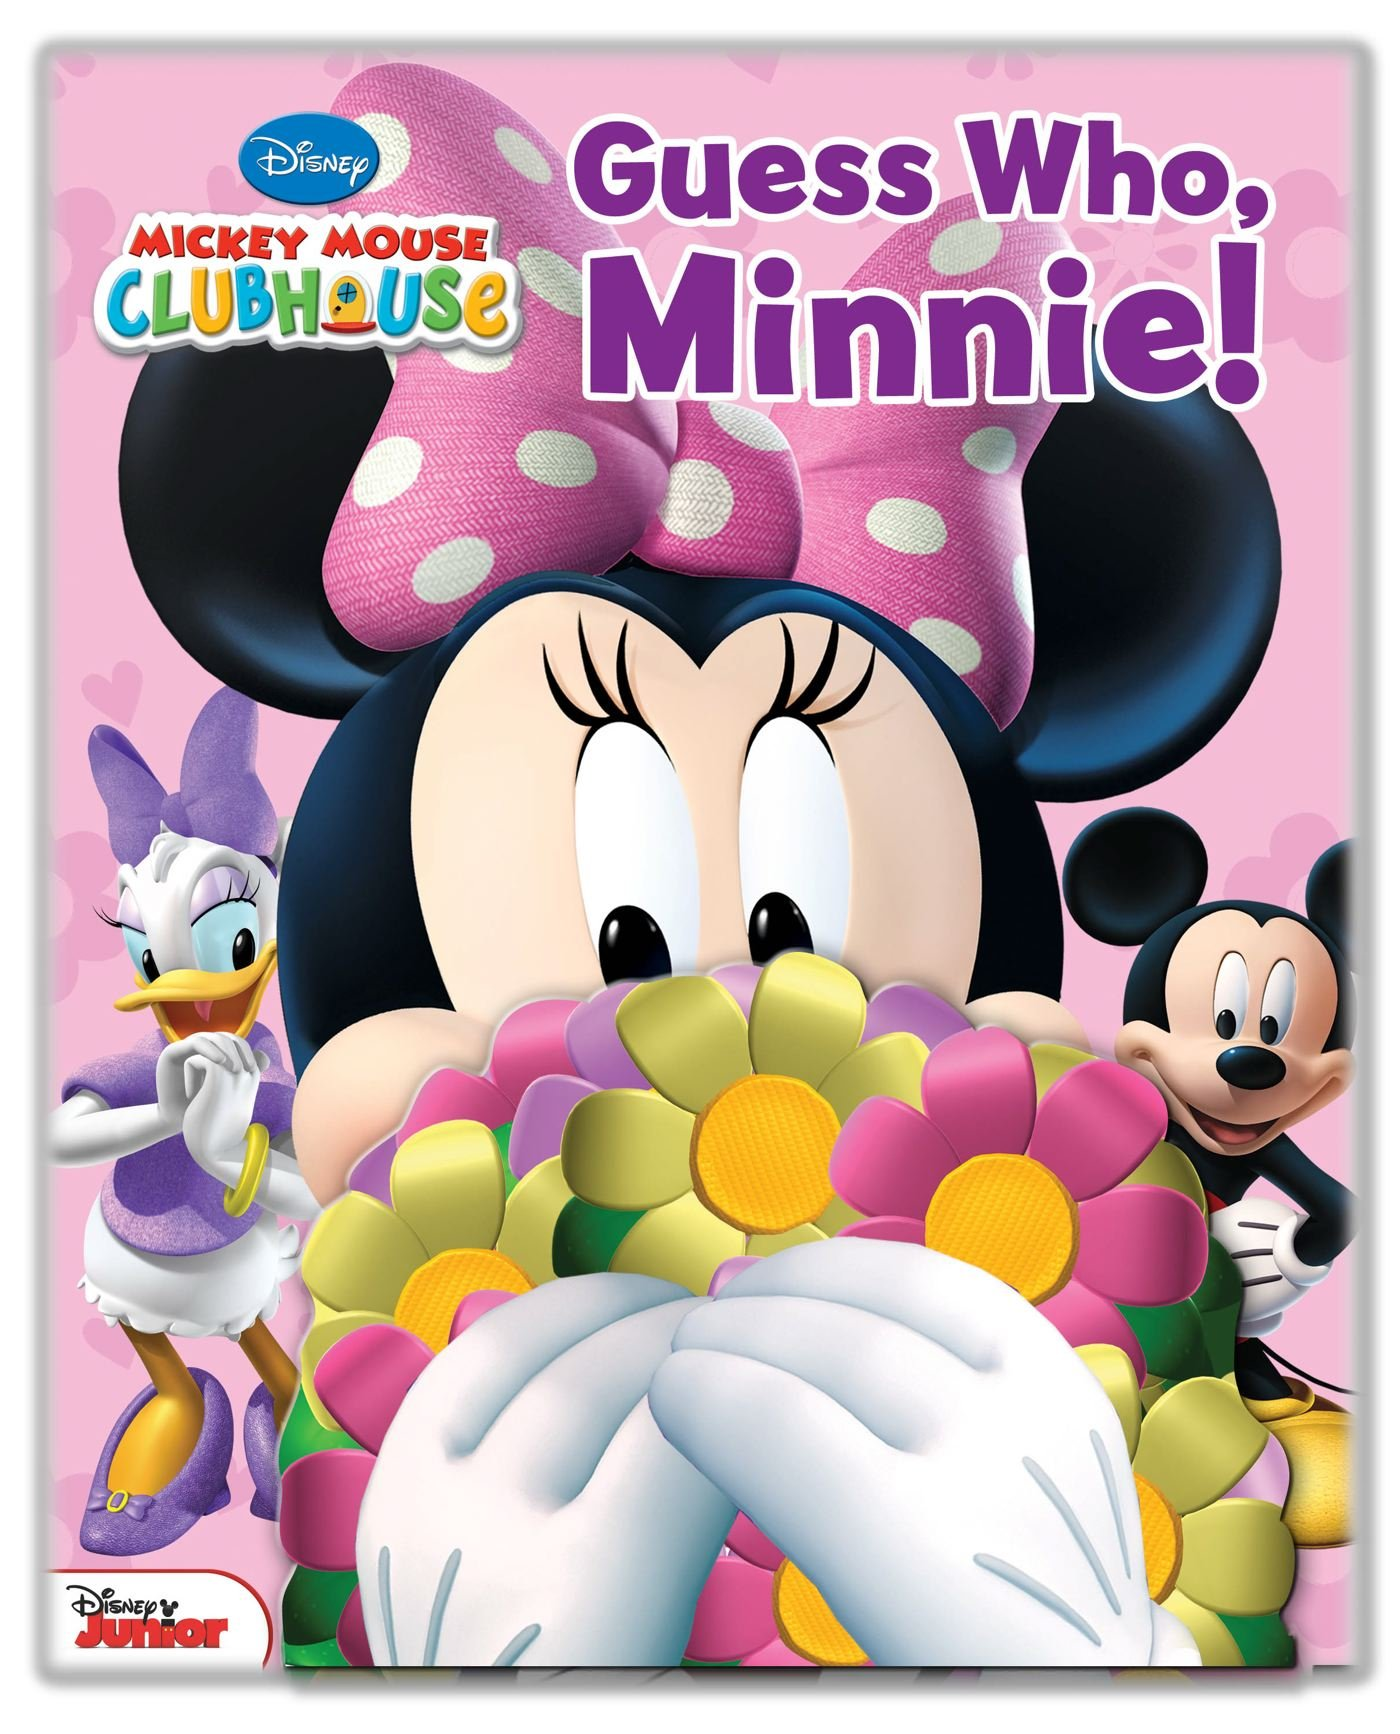 Disney Mickey Mouse Clubhouse Guess Who Minnie Hardcover – January 8 2013